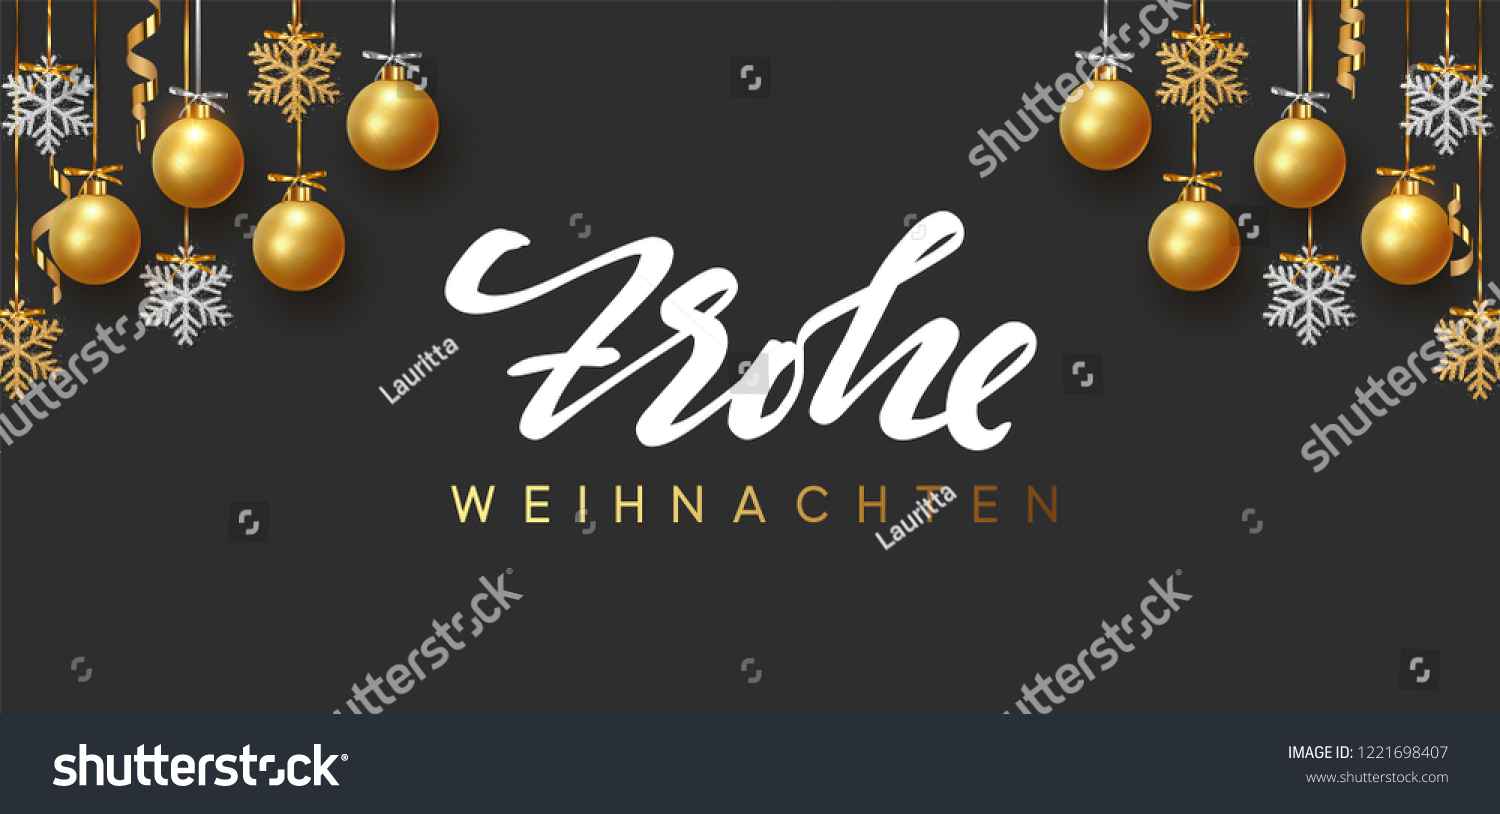 Design Weihnachten German Text Frohe Weihnachten Merry Christmas Stock Vector